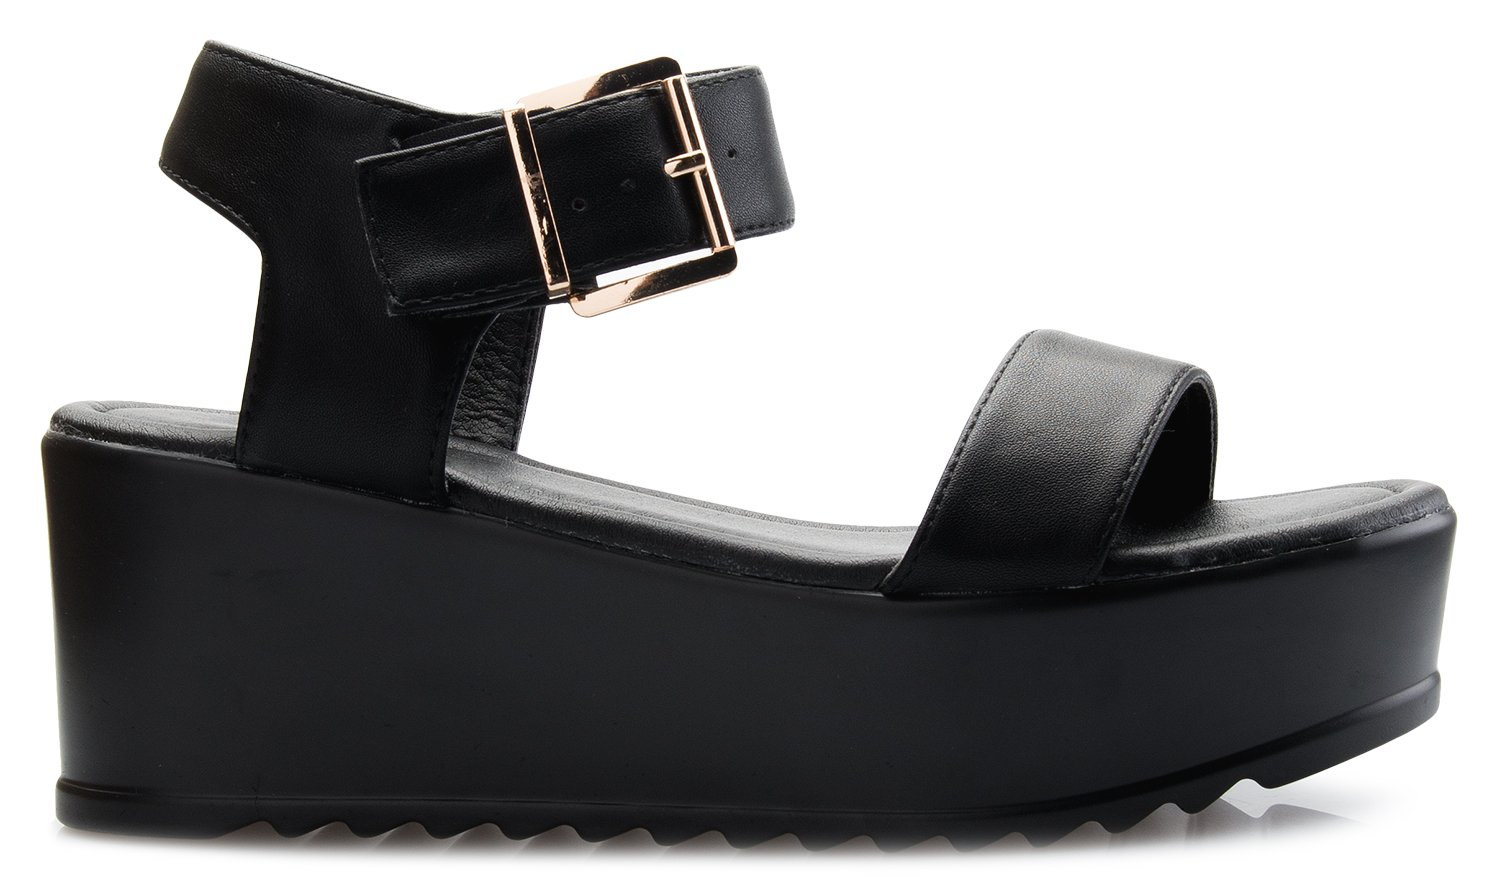 OLIVIA K Women's Platform Buckle Sandal - Open Peep Toe Fashion Chunky Ankle Strap Shoe,Black,8 B(M) US by OLIVIA K (Image #2)